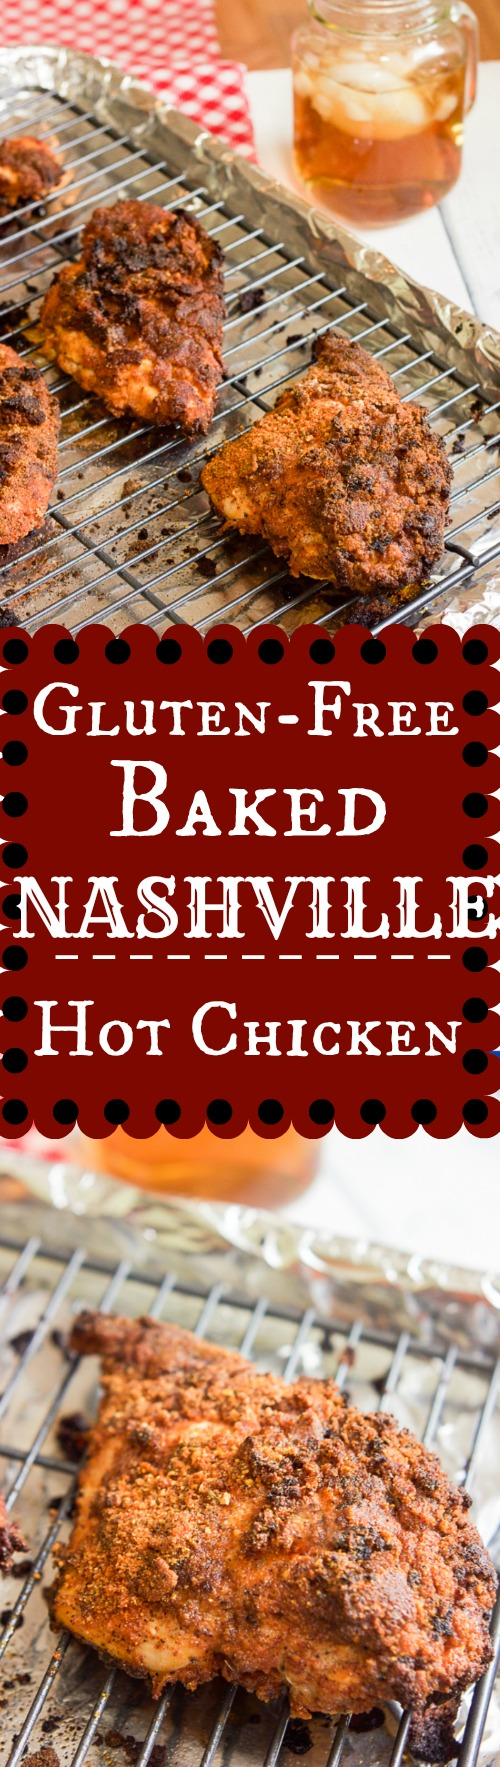 This gluten-free baked Nashville hot chicken recipe combines sweet and spicy flavors that's crispy crunchy on the outside and oh so juicy on the inside. Now you can have this southern treat at home and a much healthier gluten free baked version at that!